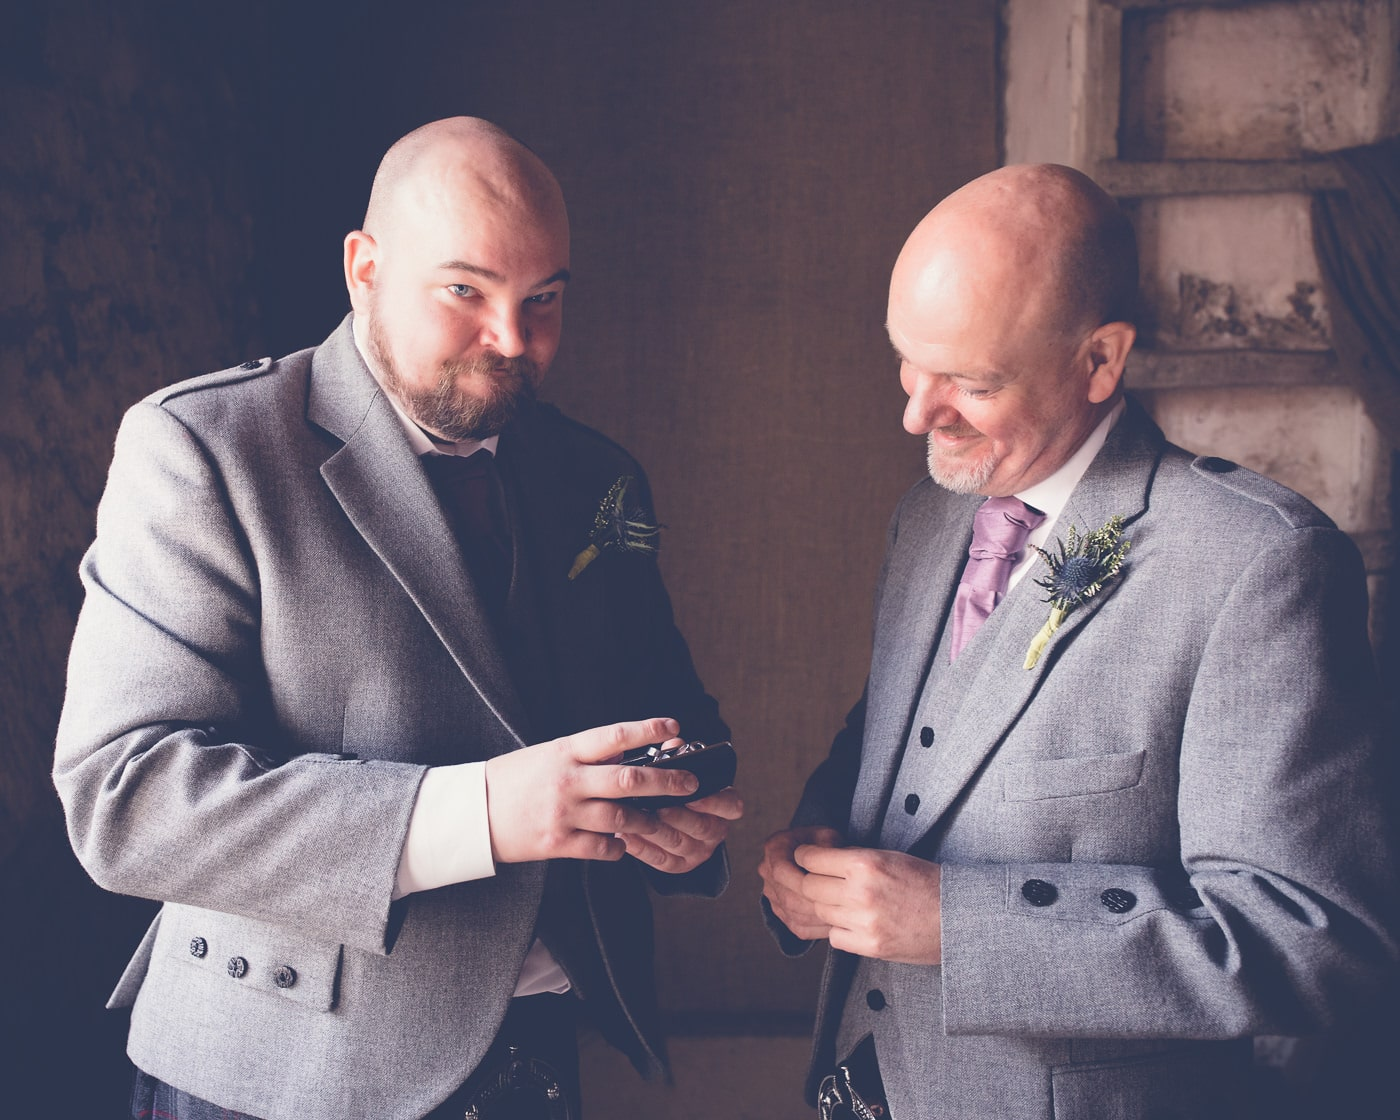 One of the most emotional moments of the day when the groom and his dad discover the very personal gift from the bride.